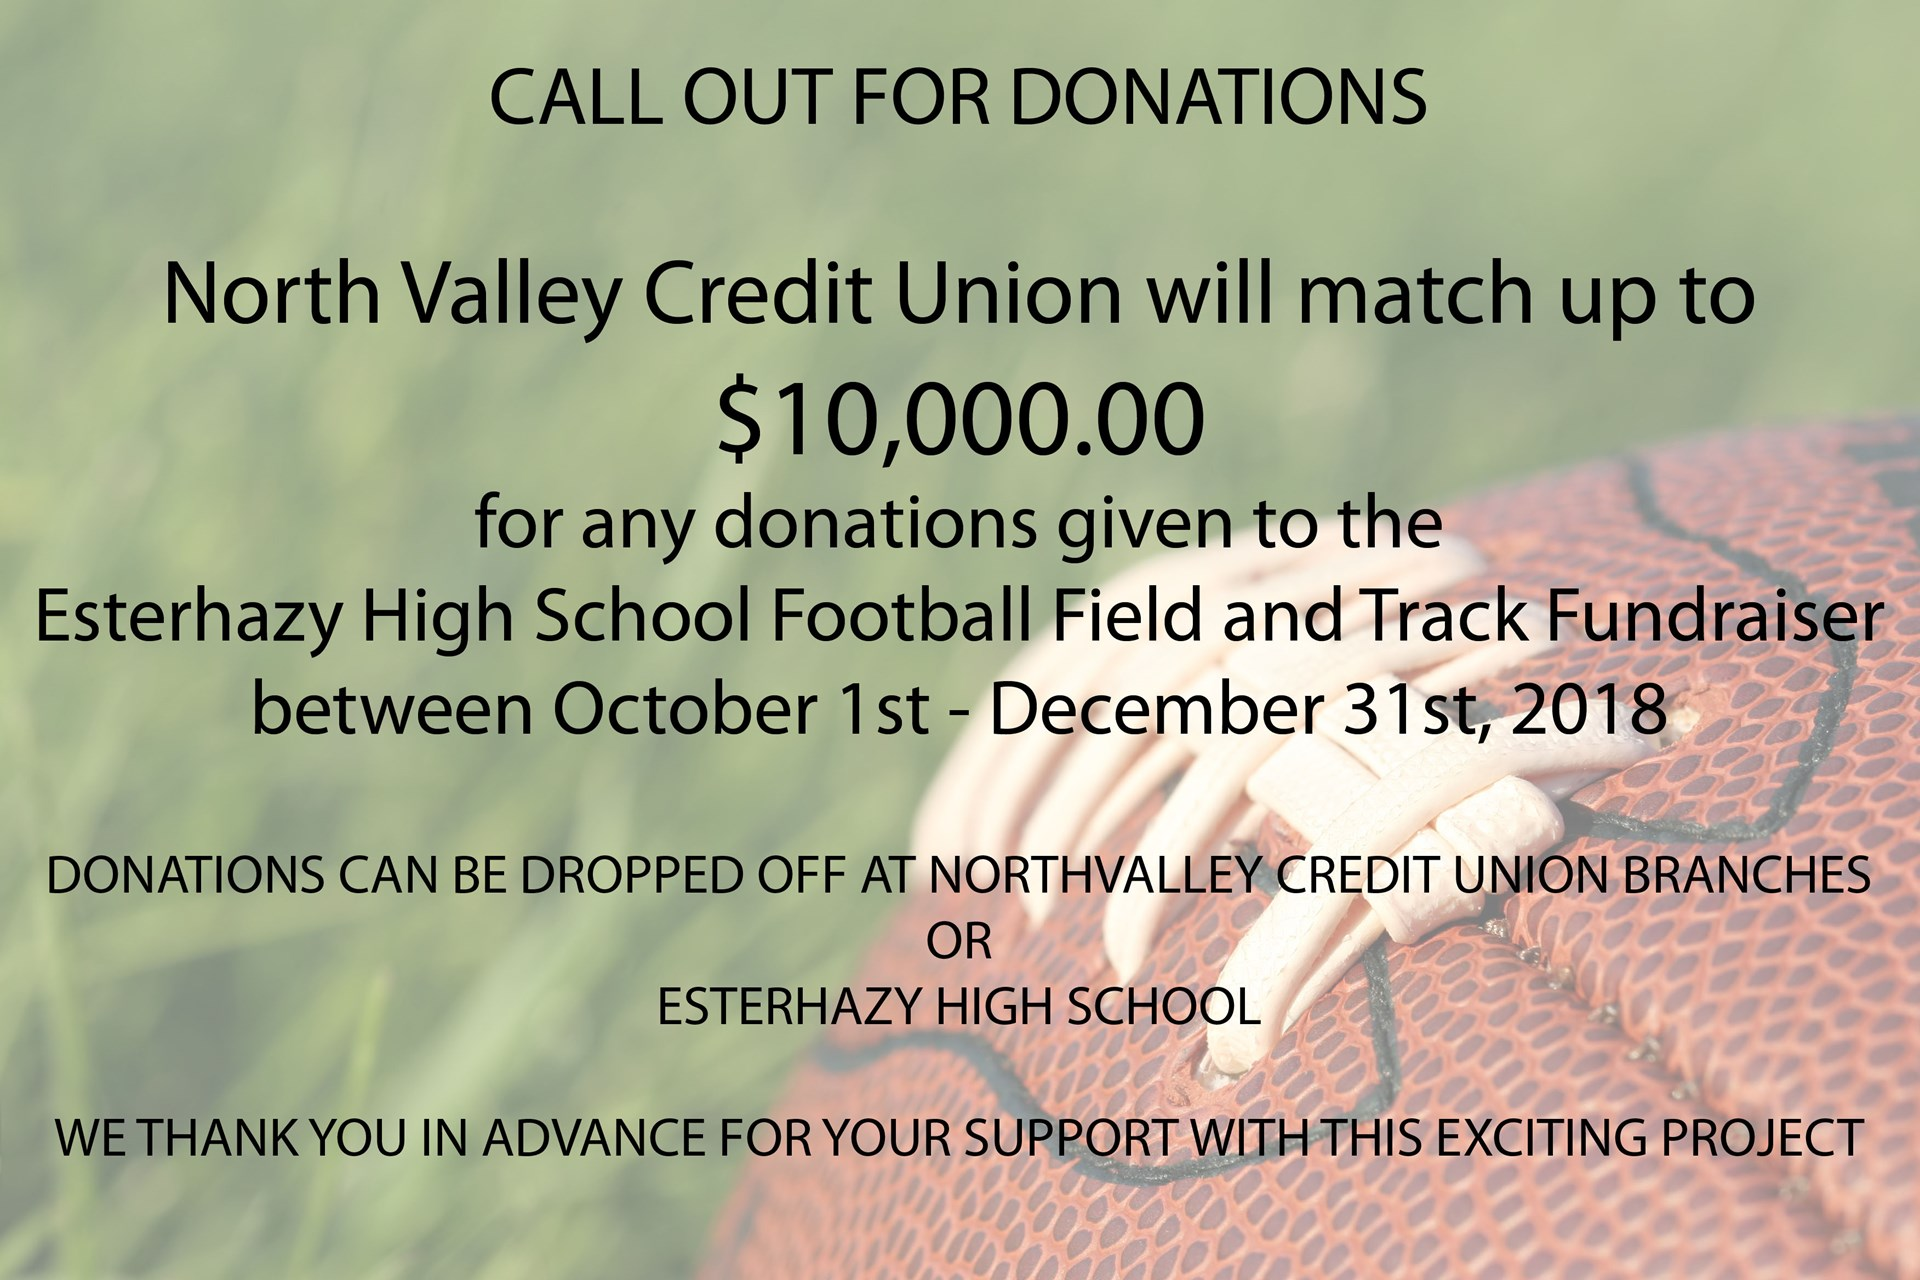 North Valley Credit Union Donation Drive